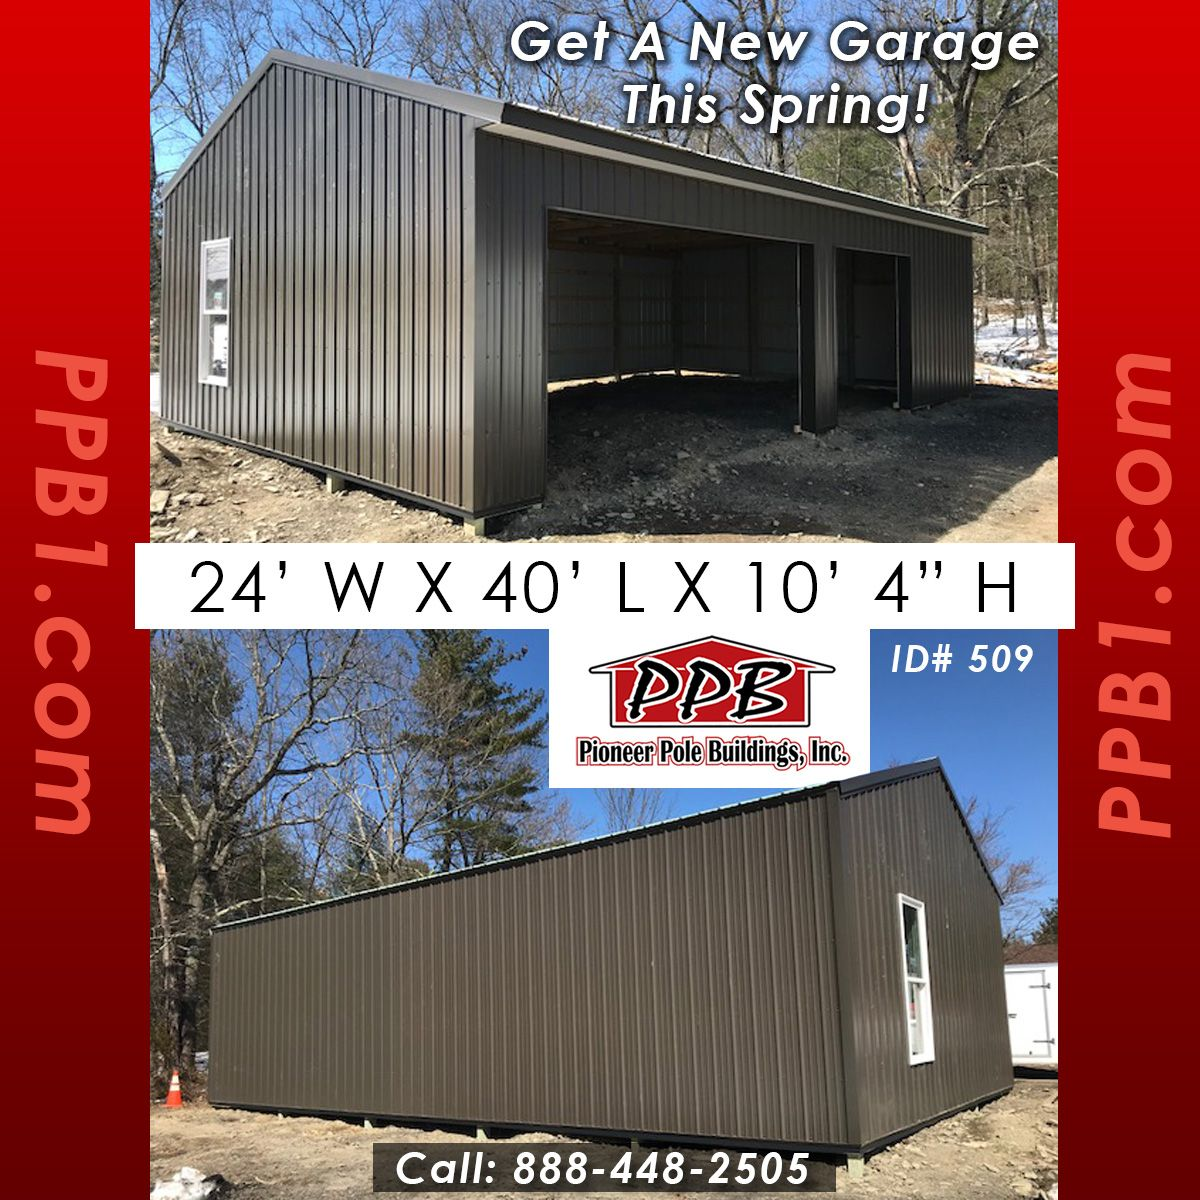 Get A New Garage This Spring Dimensions 24 W X 40 L X 10 4 H 24 Standard Trusses 4 On Center 4 12 Pitch Colo Siding Colors Garage Design Pitch Colour